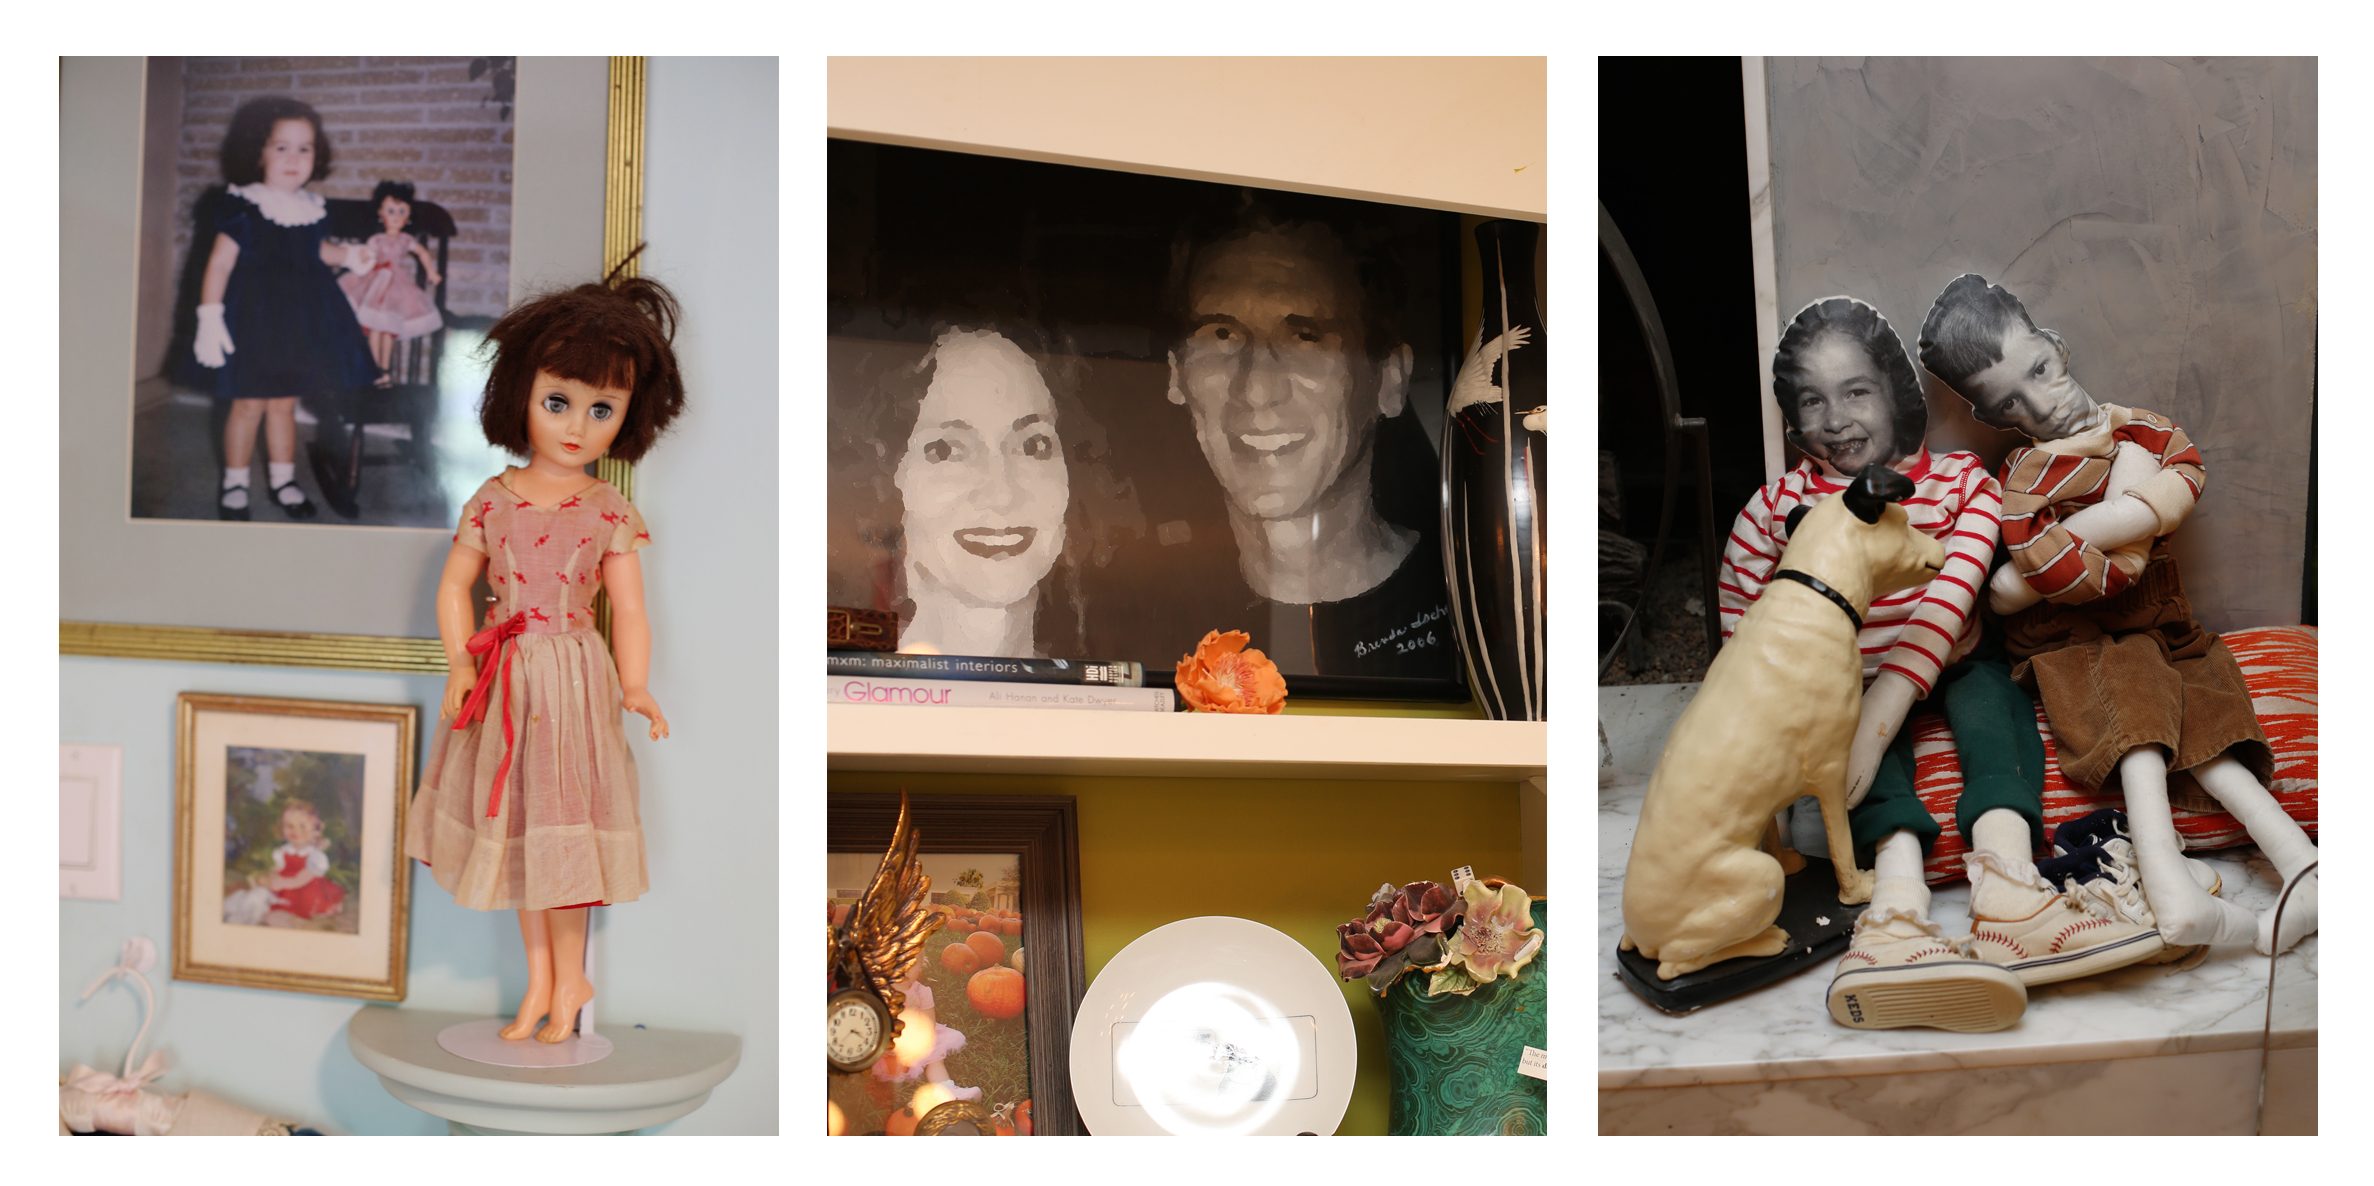 Brenda's childhood doll, a portrait of her and her husband Larry, and dolls made from photos of them as children...